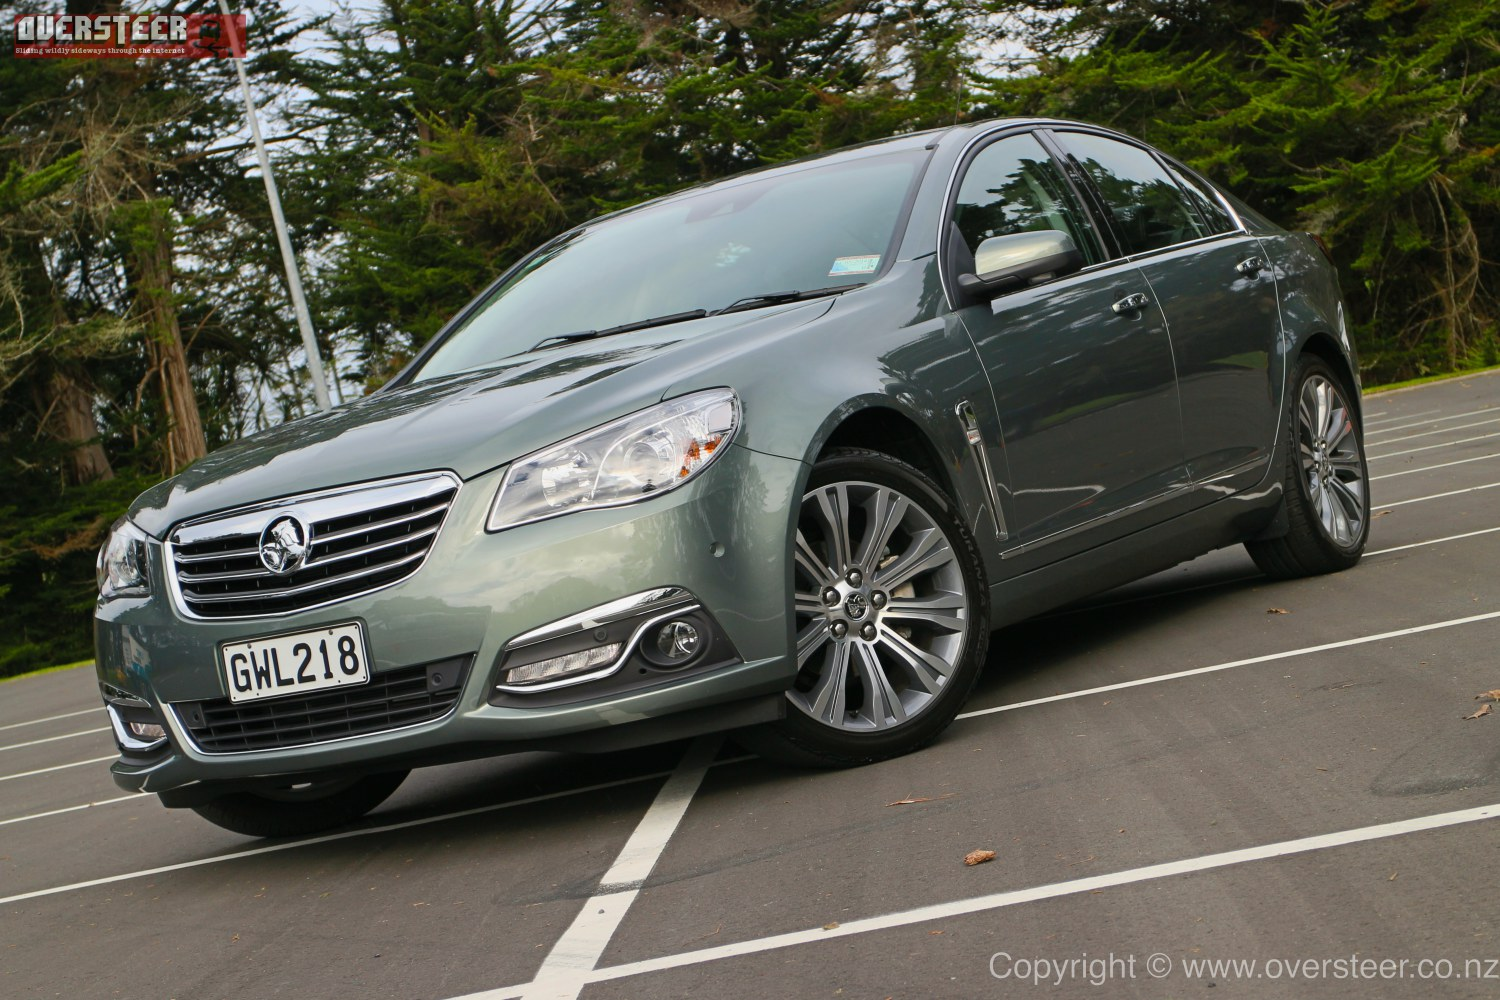 ROAD TEST: Holden Commodore Calais V